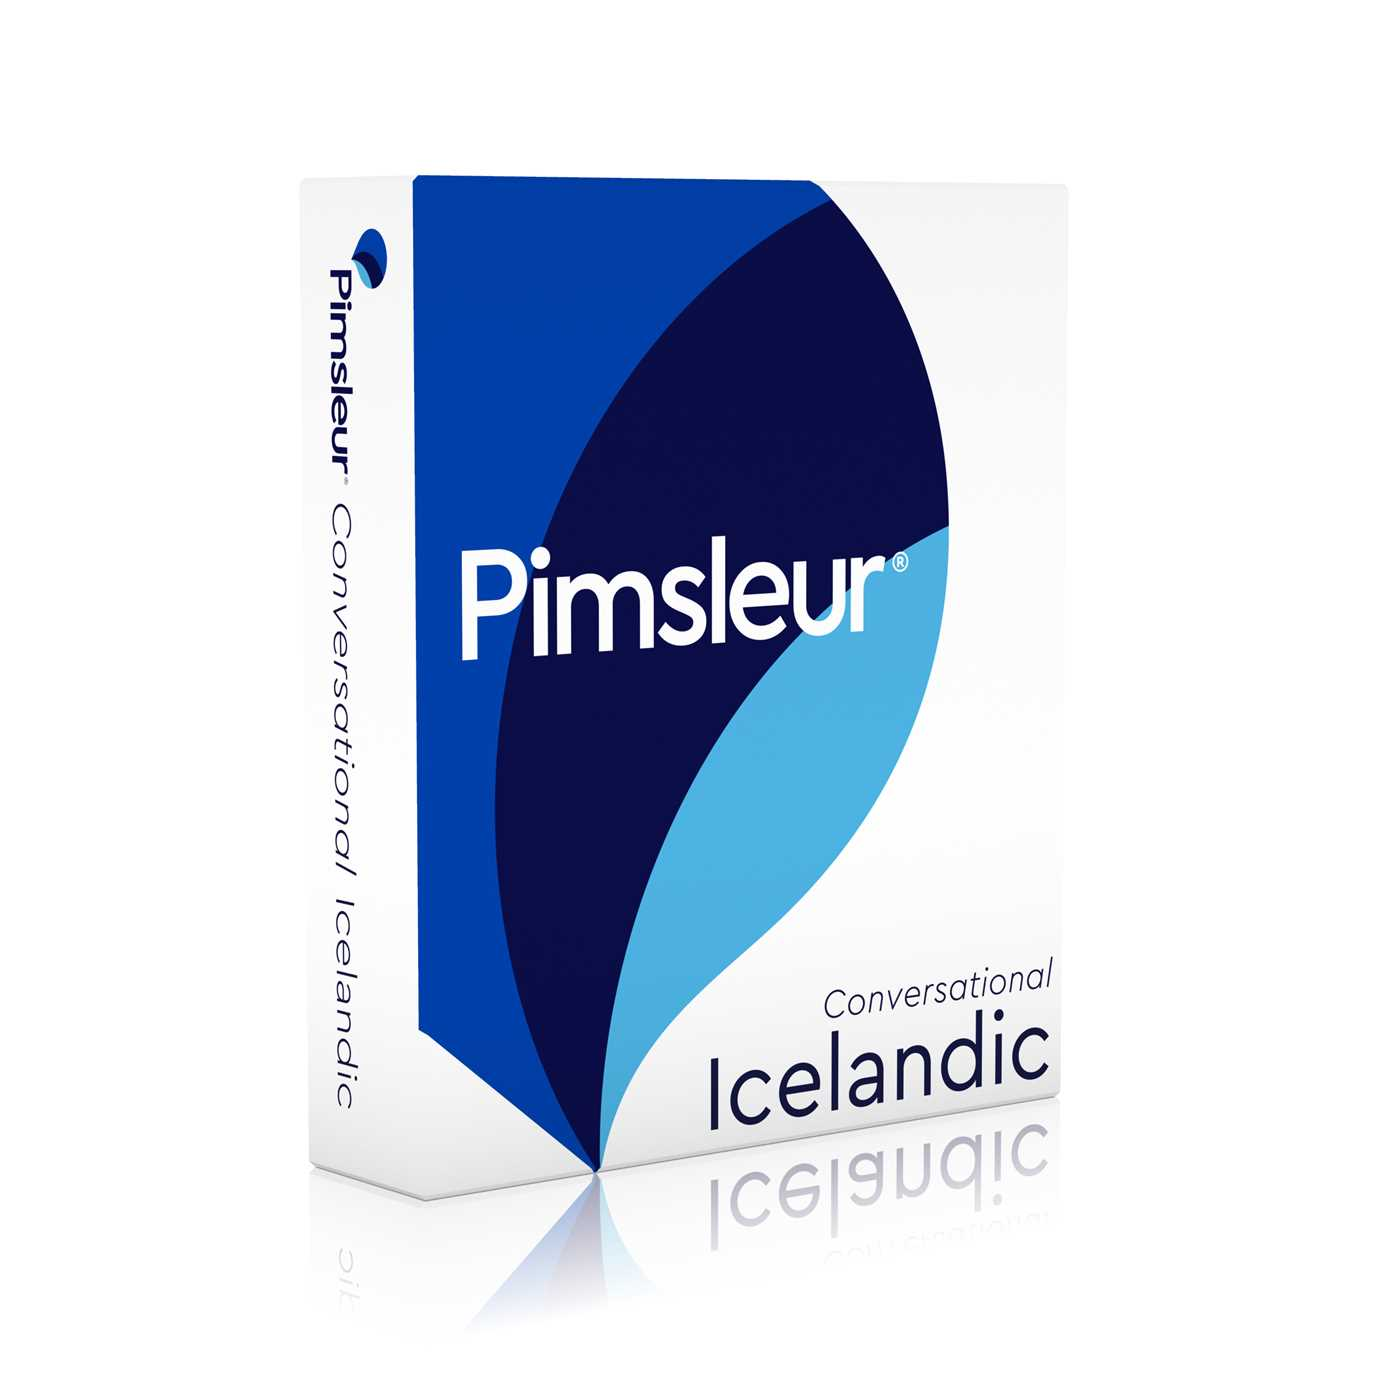 Pimsleur Icelandic Conversational Course - Level 1 Lessons 1-16 CD : Learn to Speak and Understand Icelandic with Pimsleur Language Programs